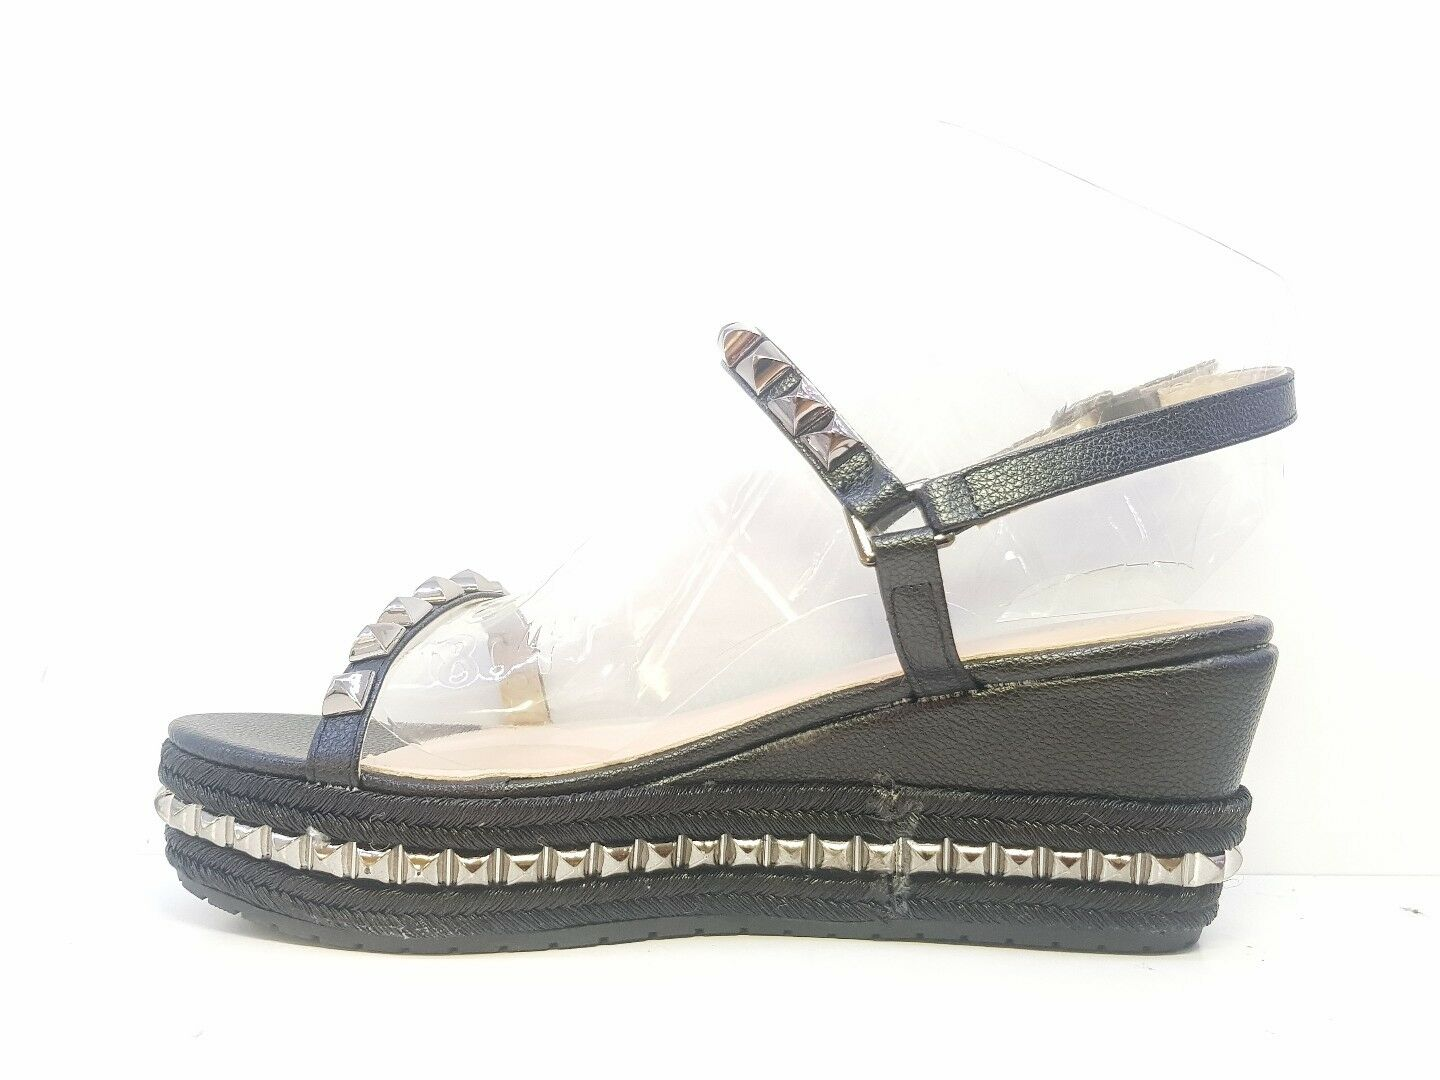 Big Dreams Ladies Black Studded Size Wedge Open Toe Sandals Size Studded d8ce06